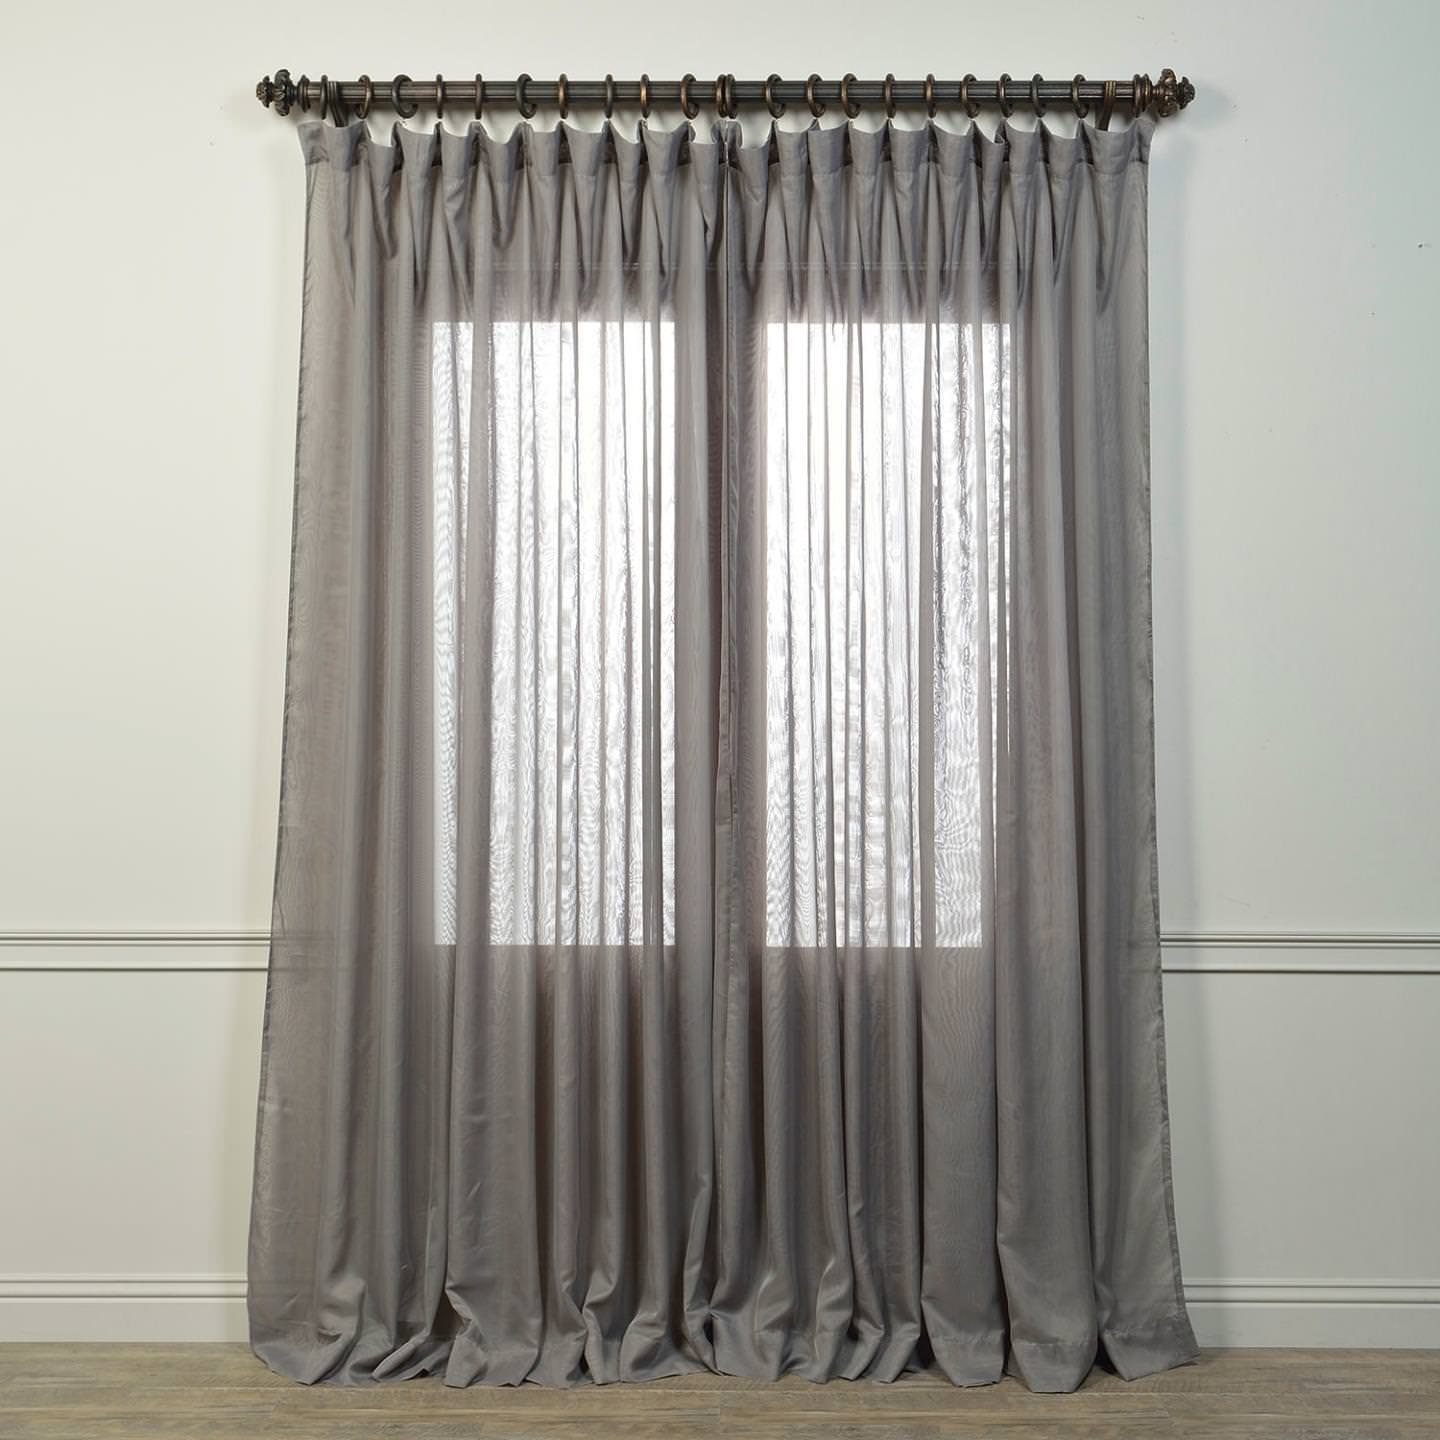 panels blackout double large grommet of curtains pocket drapes full inch rod room curtain living grommets fabulous width size wide